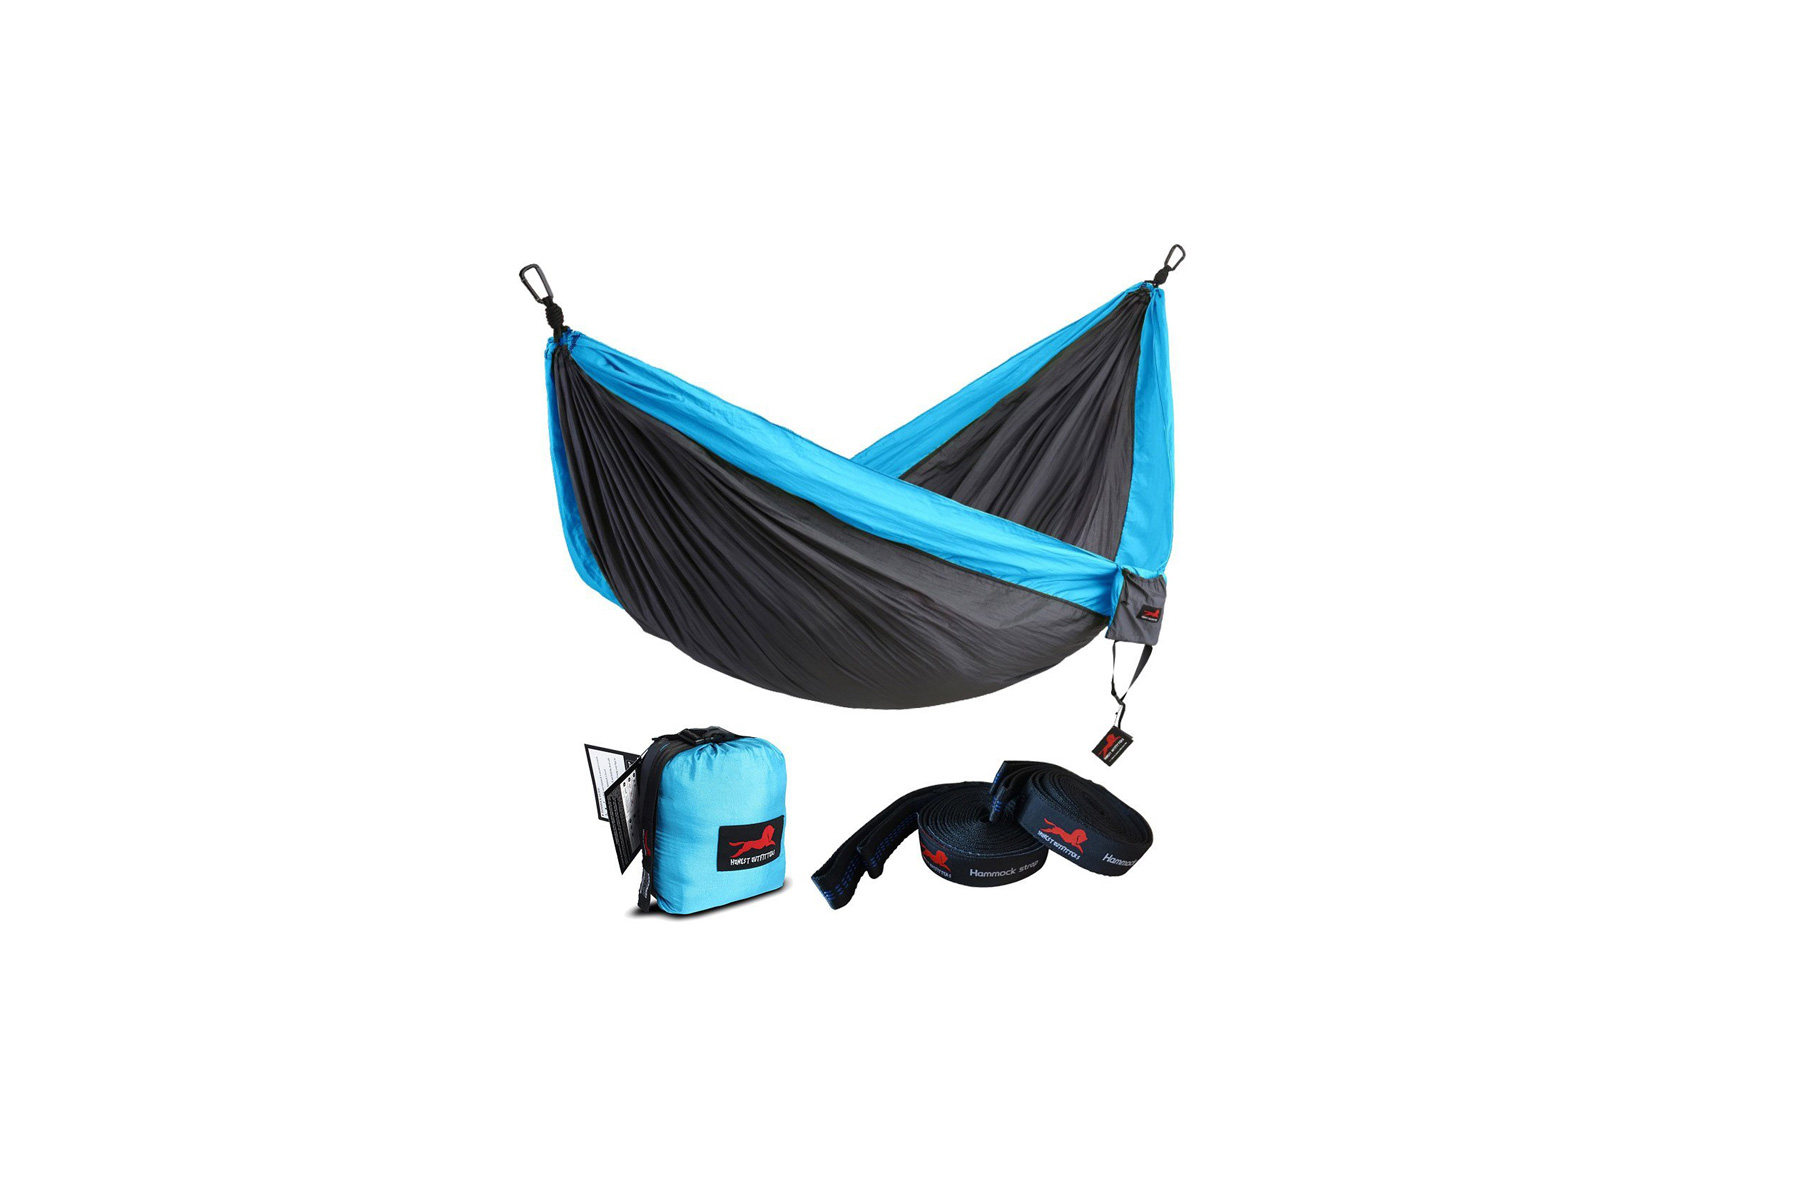 Camping Hammock for Amazon Prime Father's Day